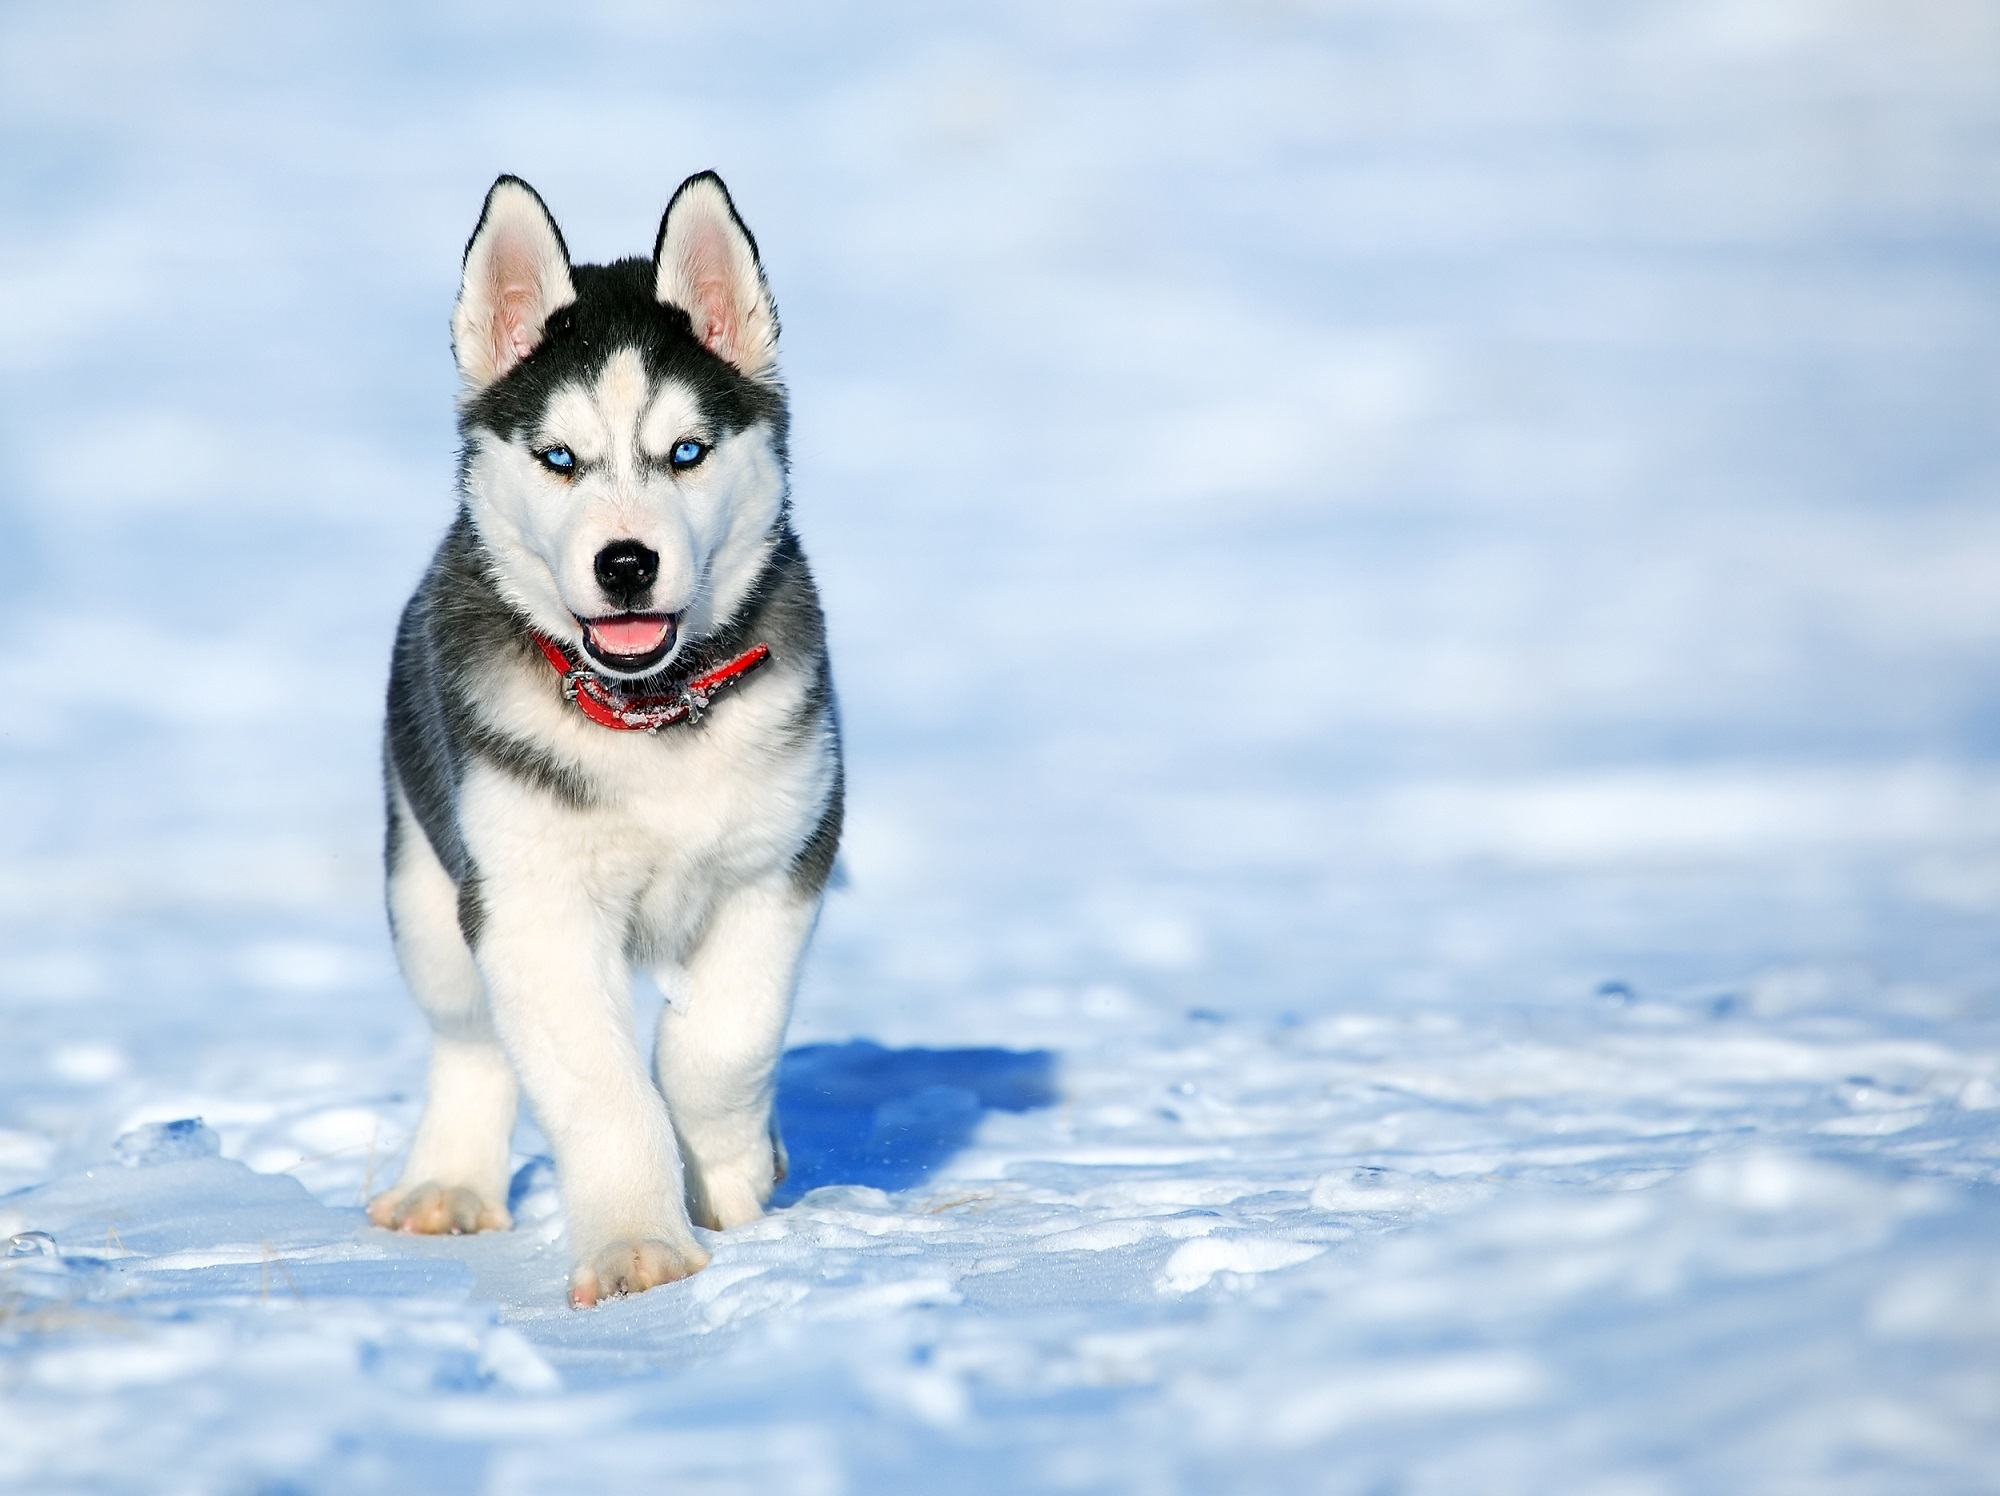 Cute Husky Puppy In The Snow Hd Wallpaper Background Image